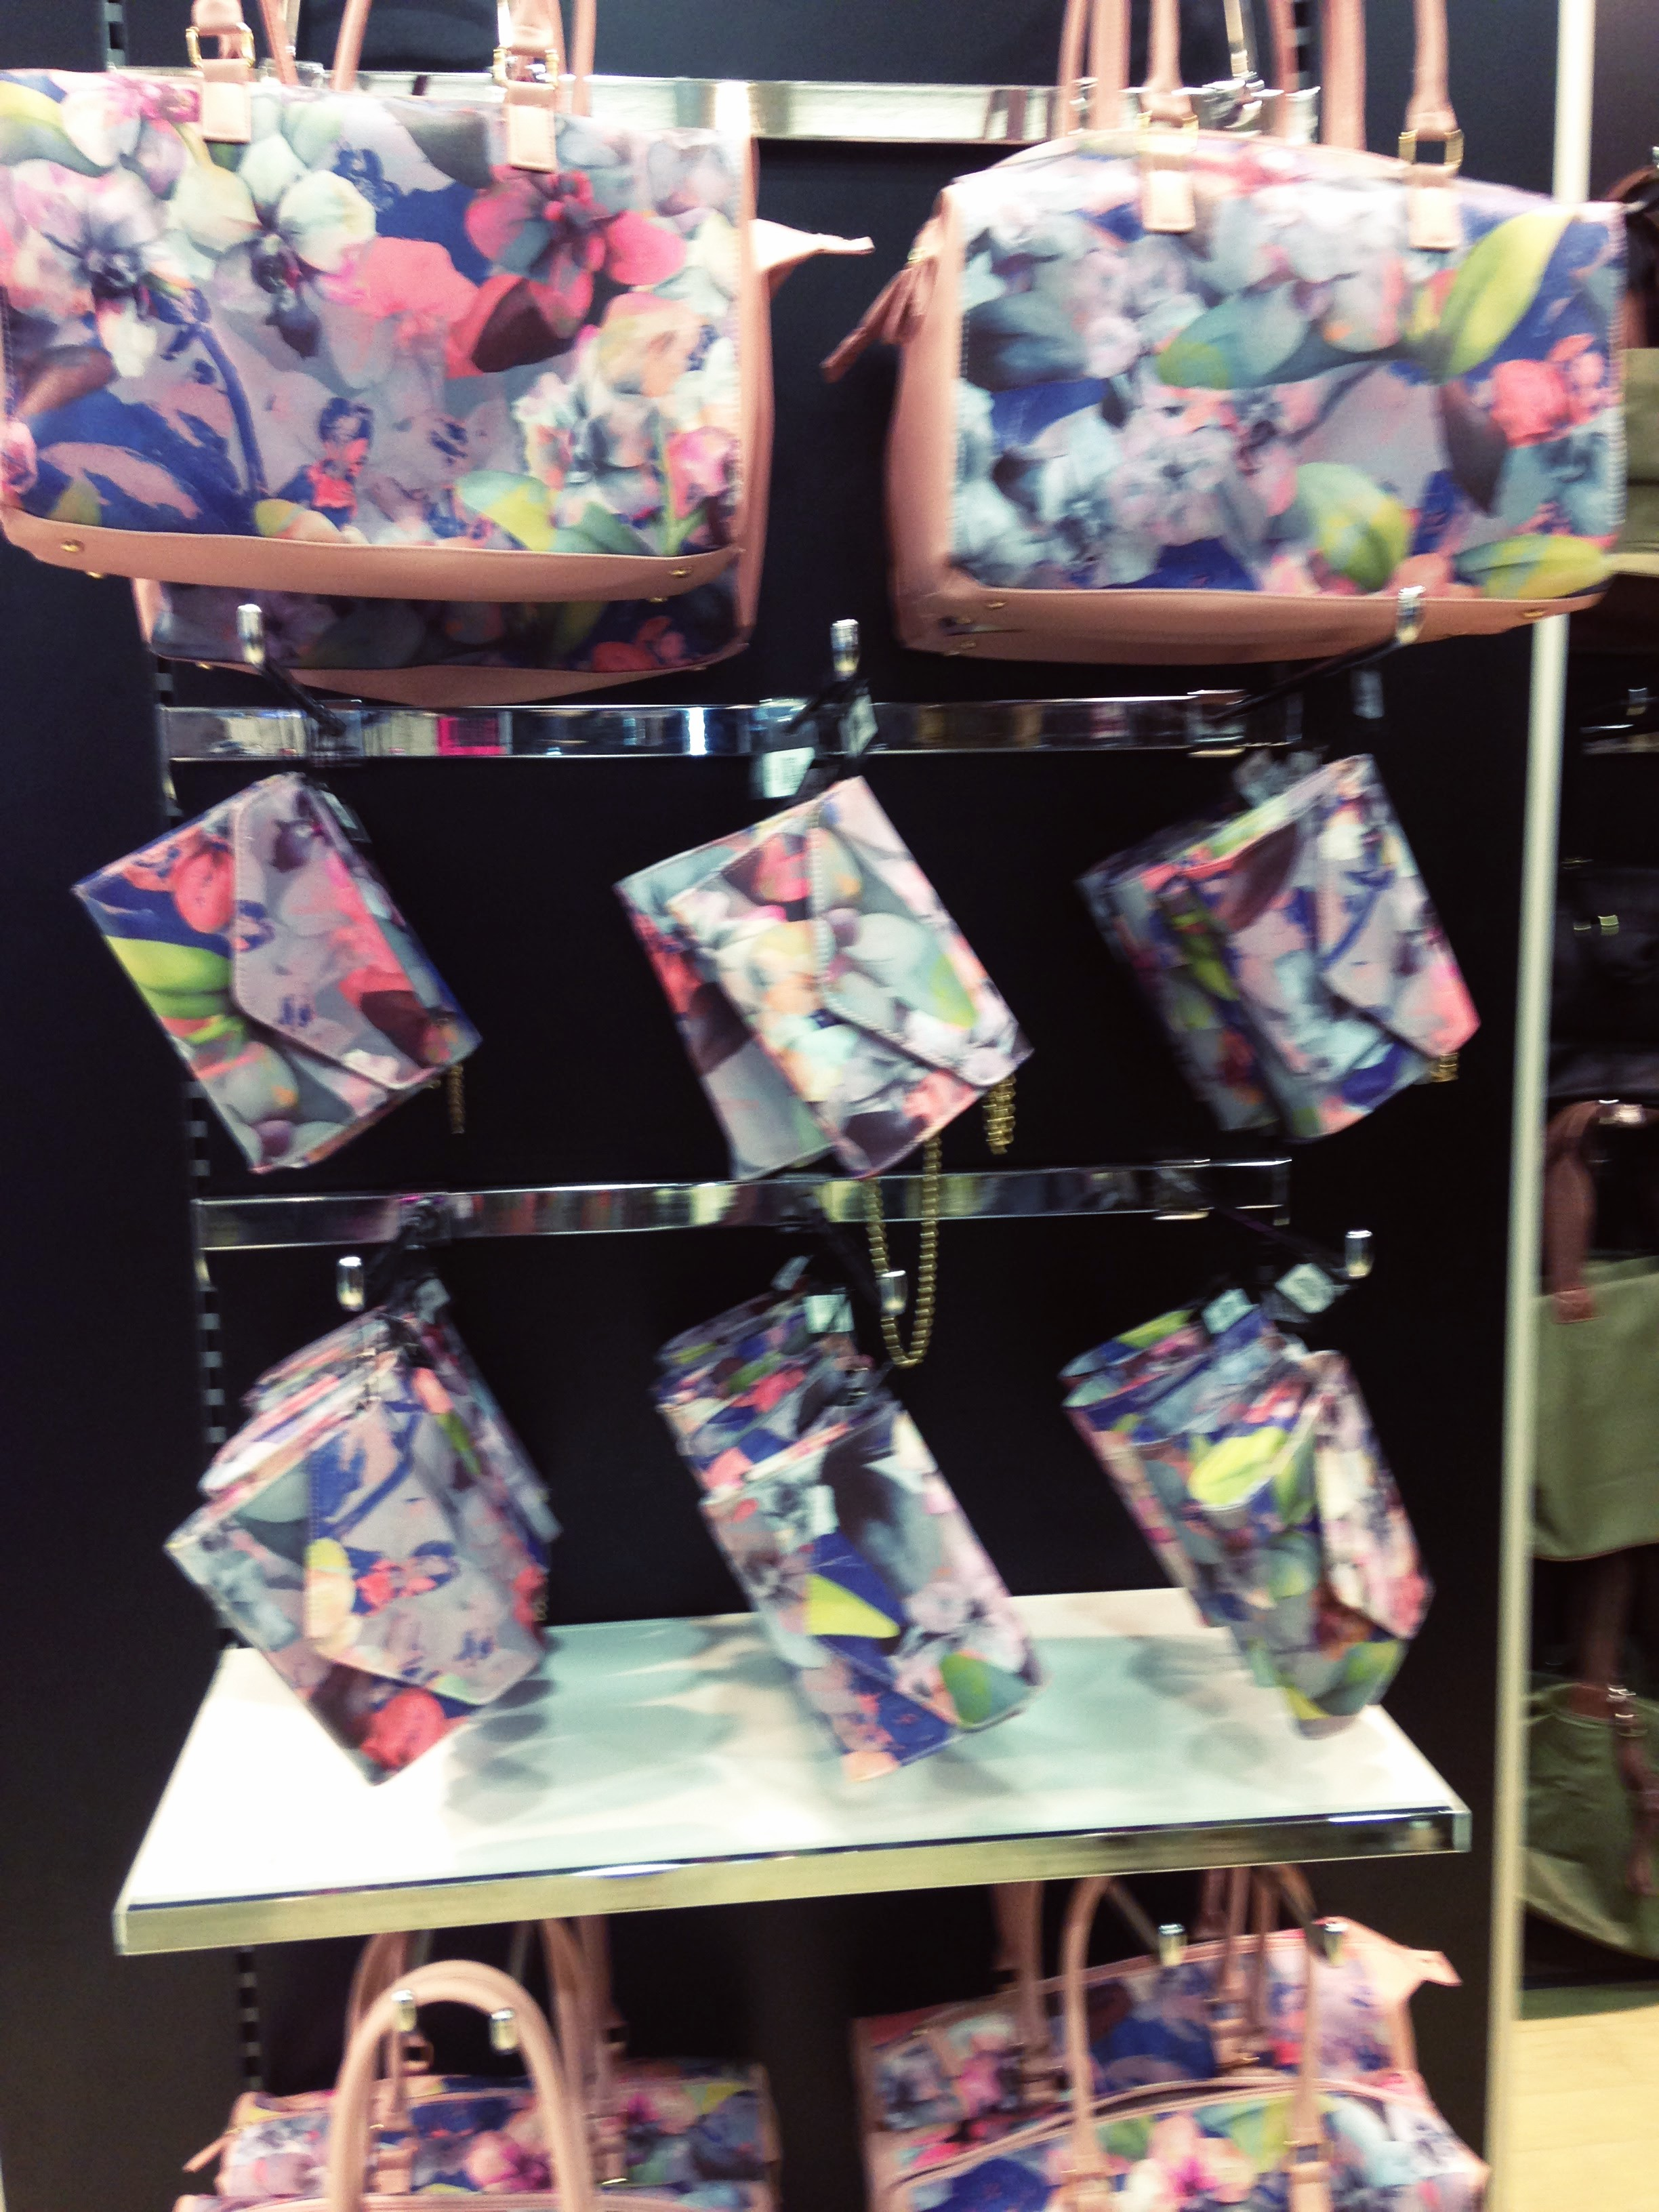 Fab floweral bag range. Price from £10-£18. These are so pretty.